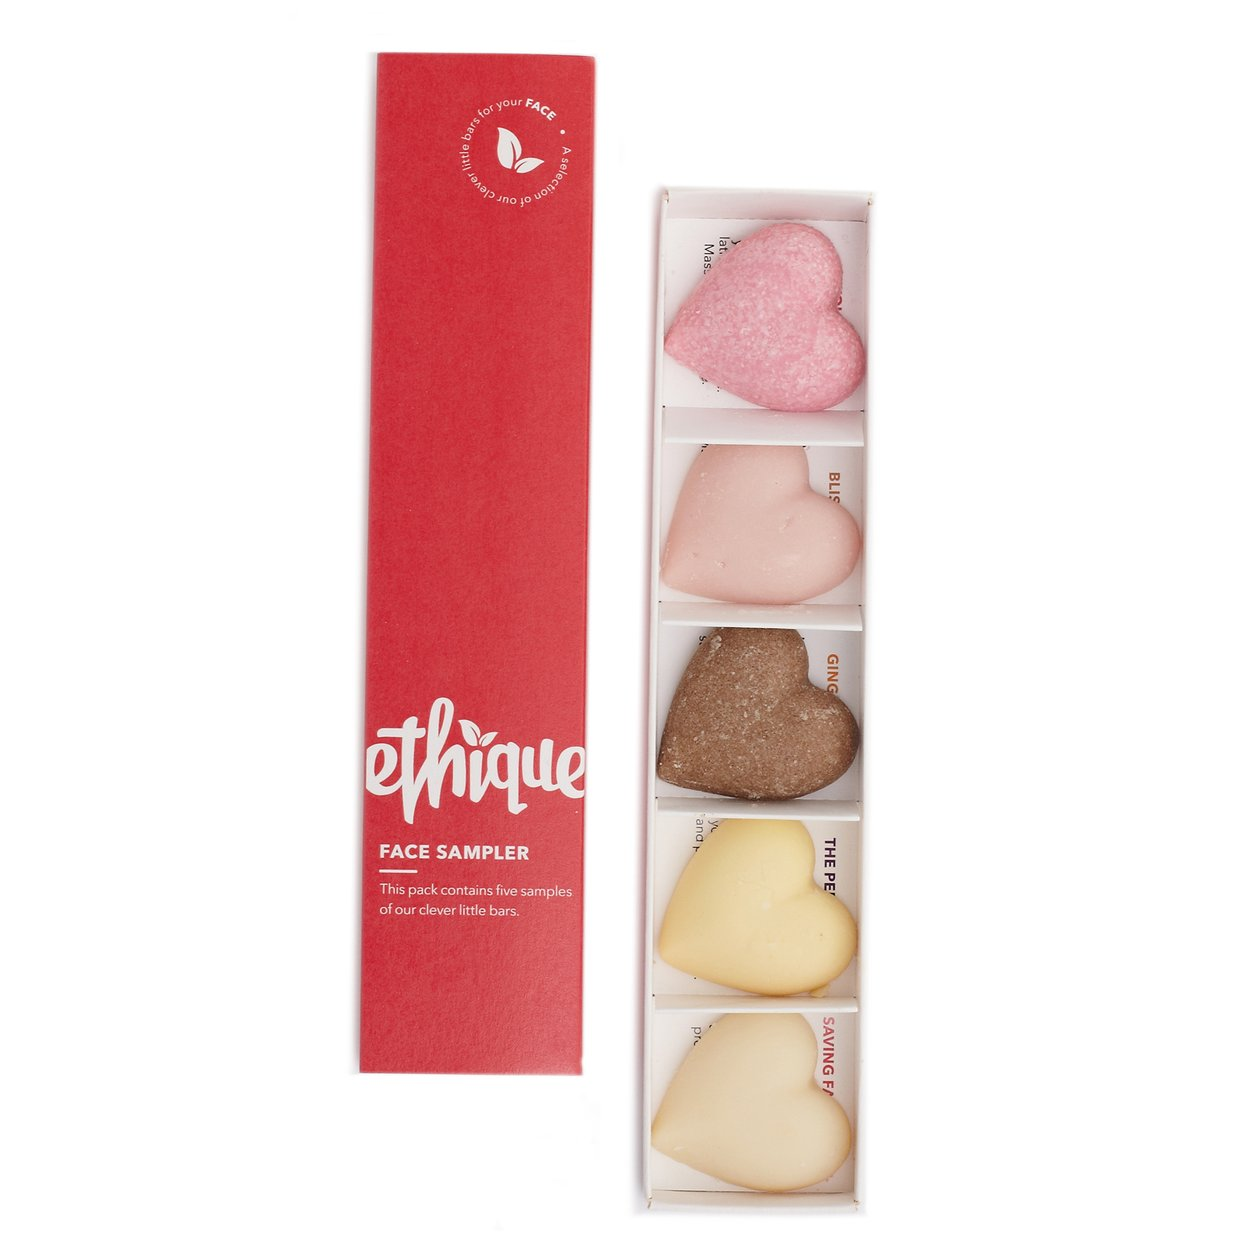 Ethique Face Sampler - A Collection of Face Product Bars